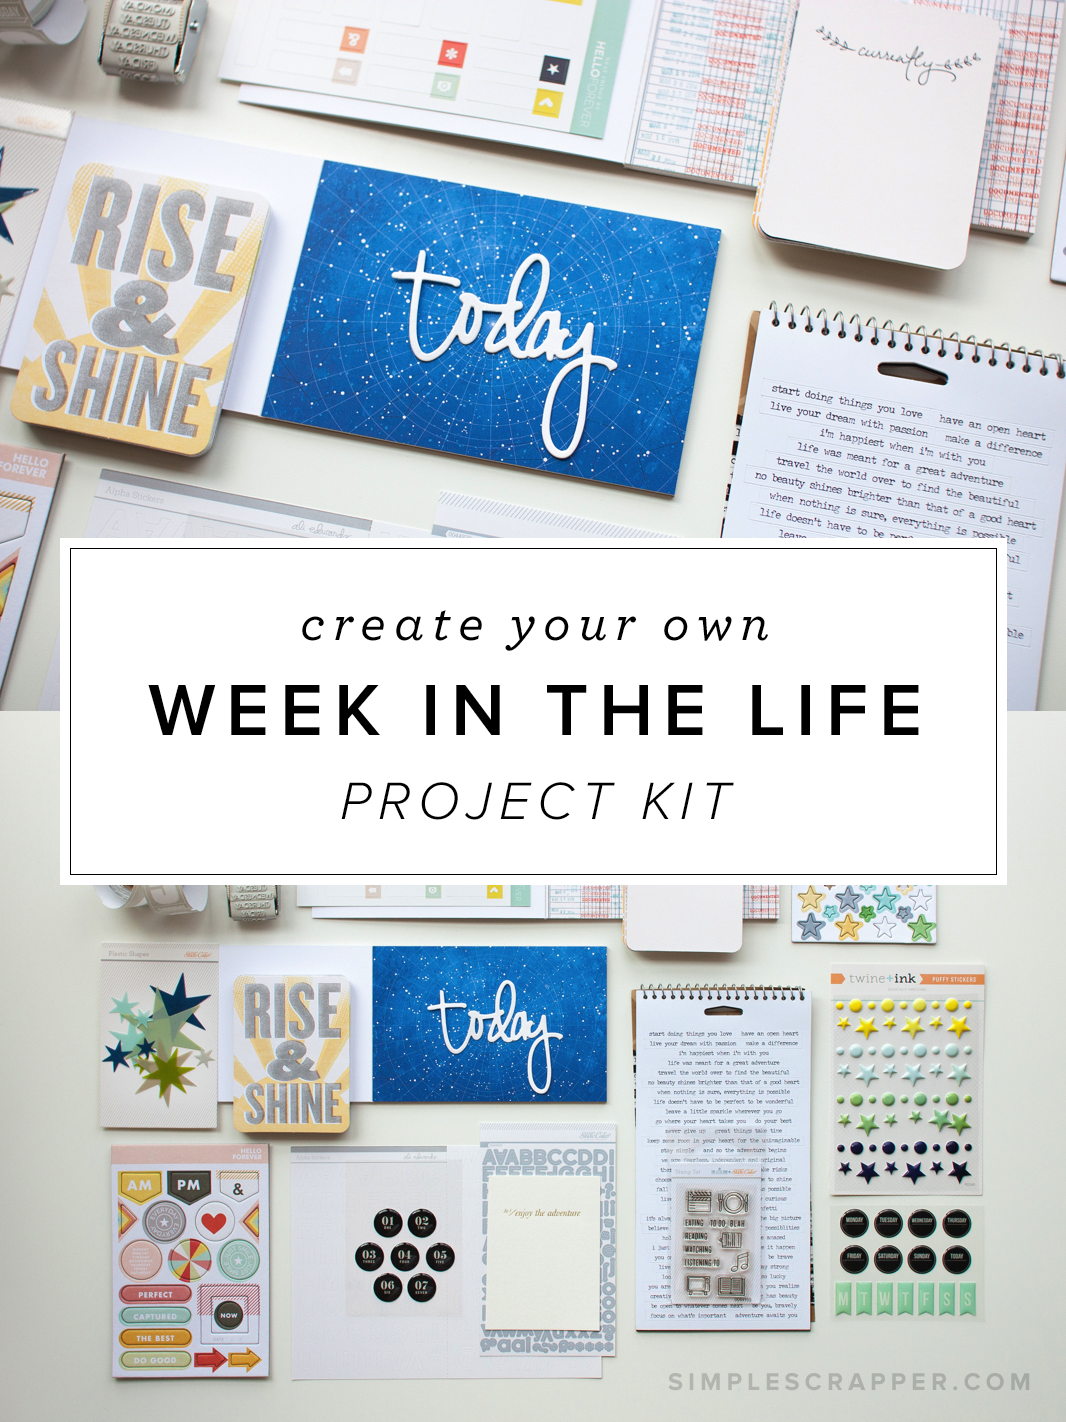 Create Your Own Kit for Week in the Life